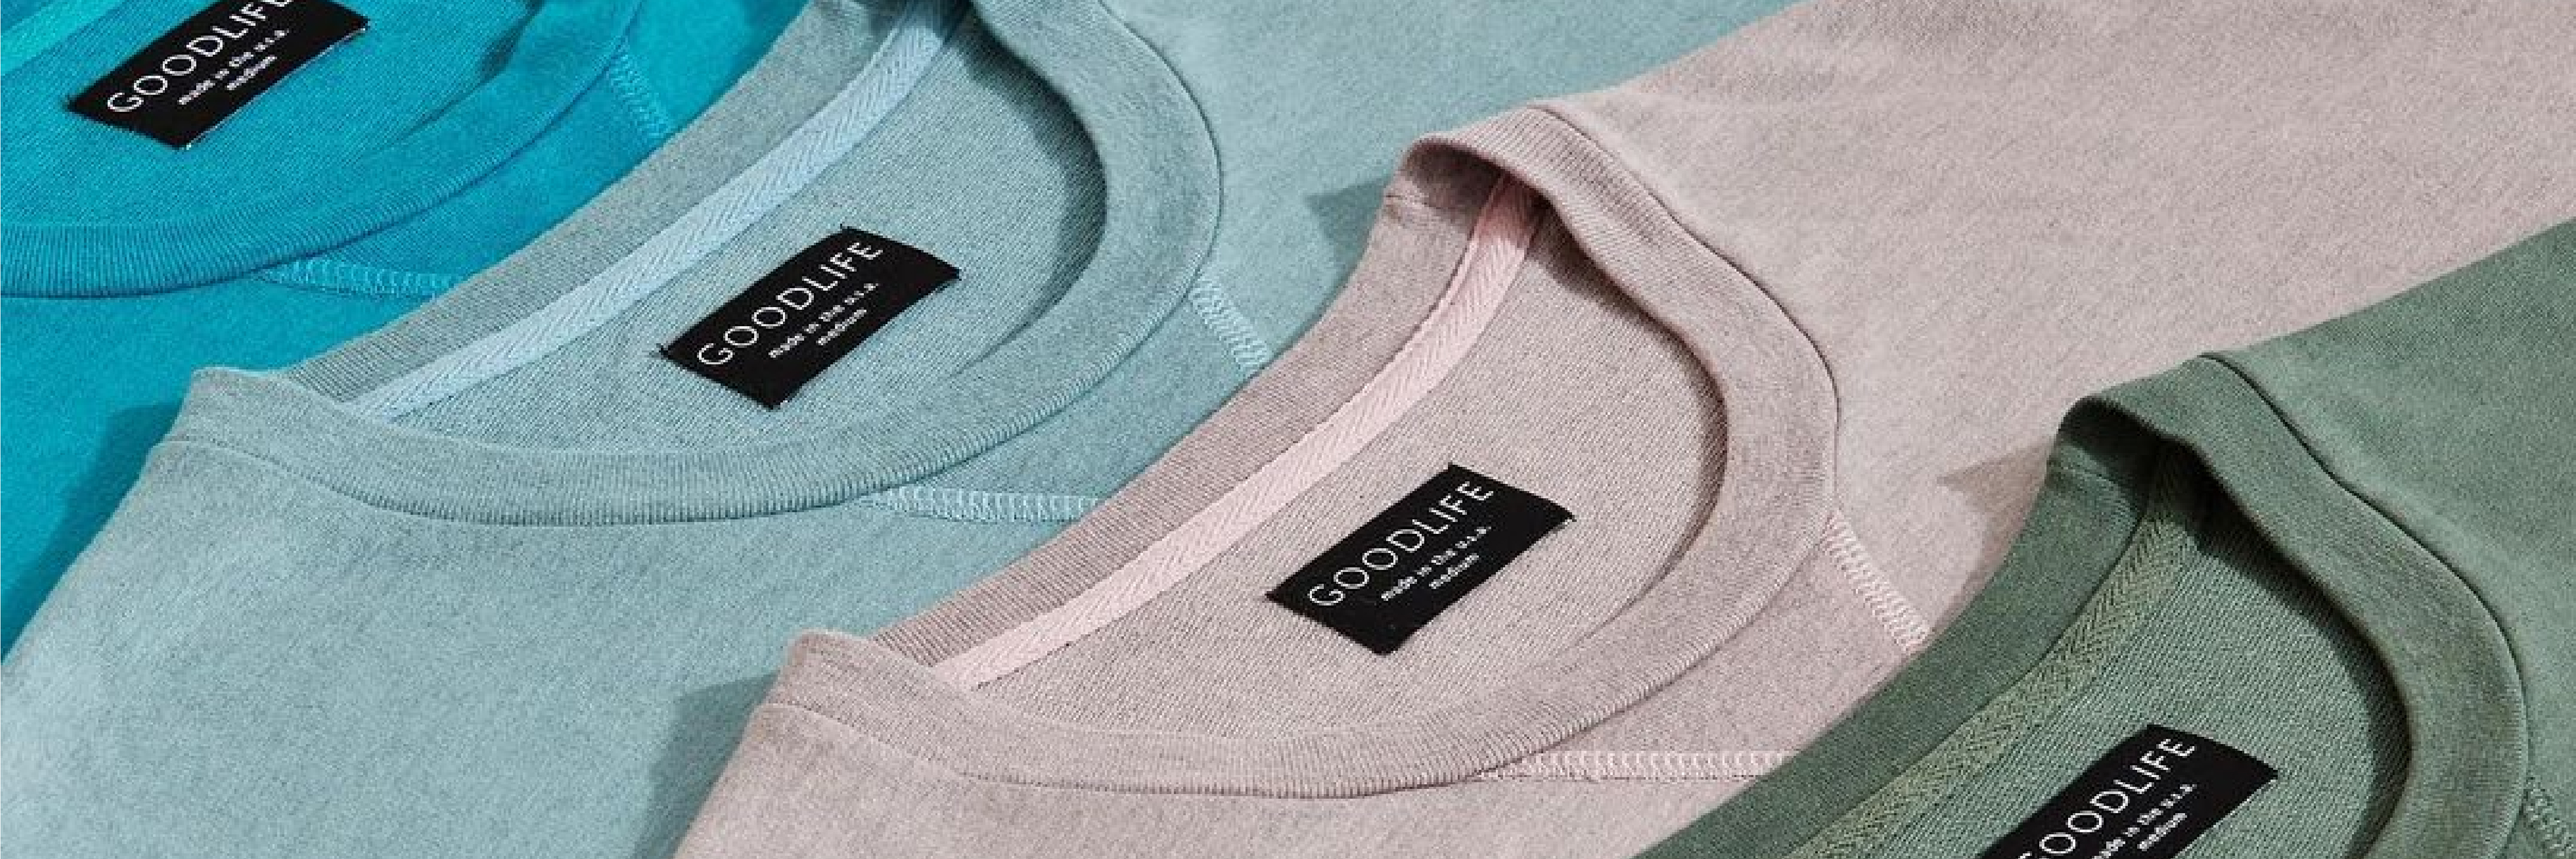 blue gray and green t shirts